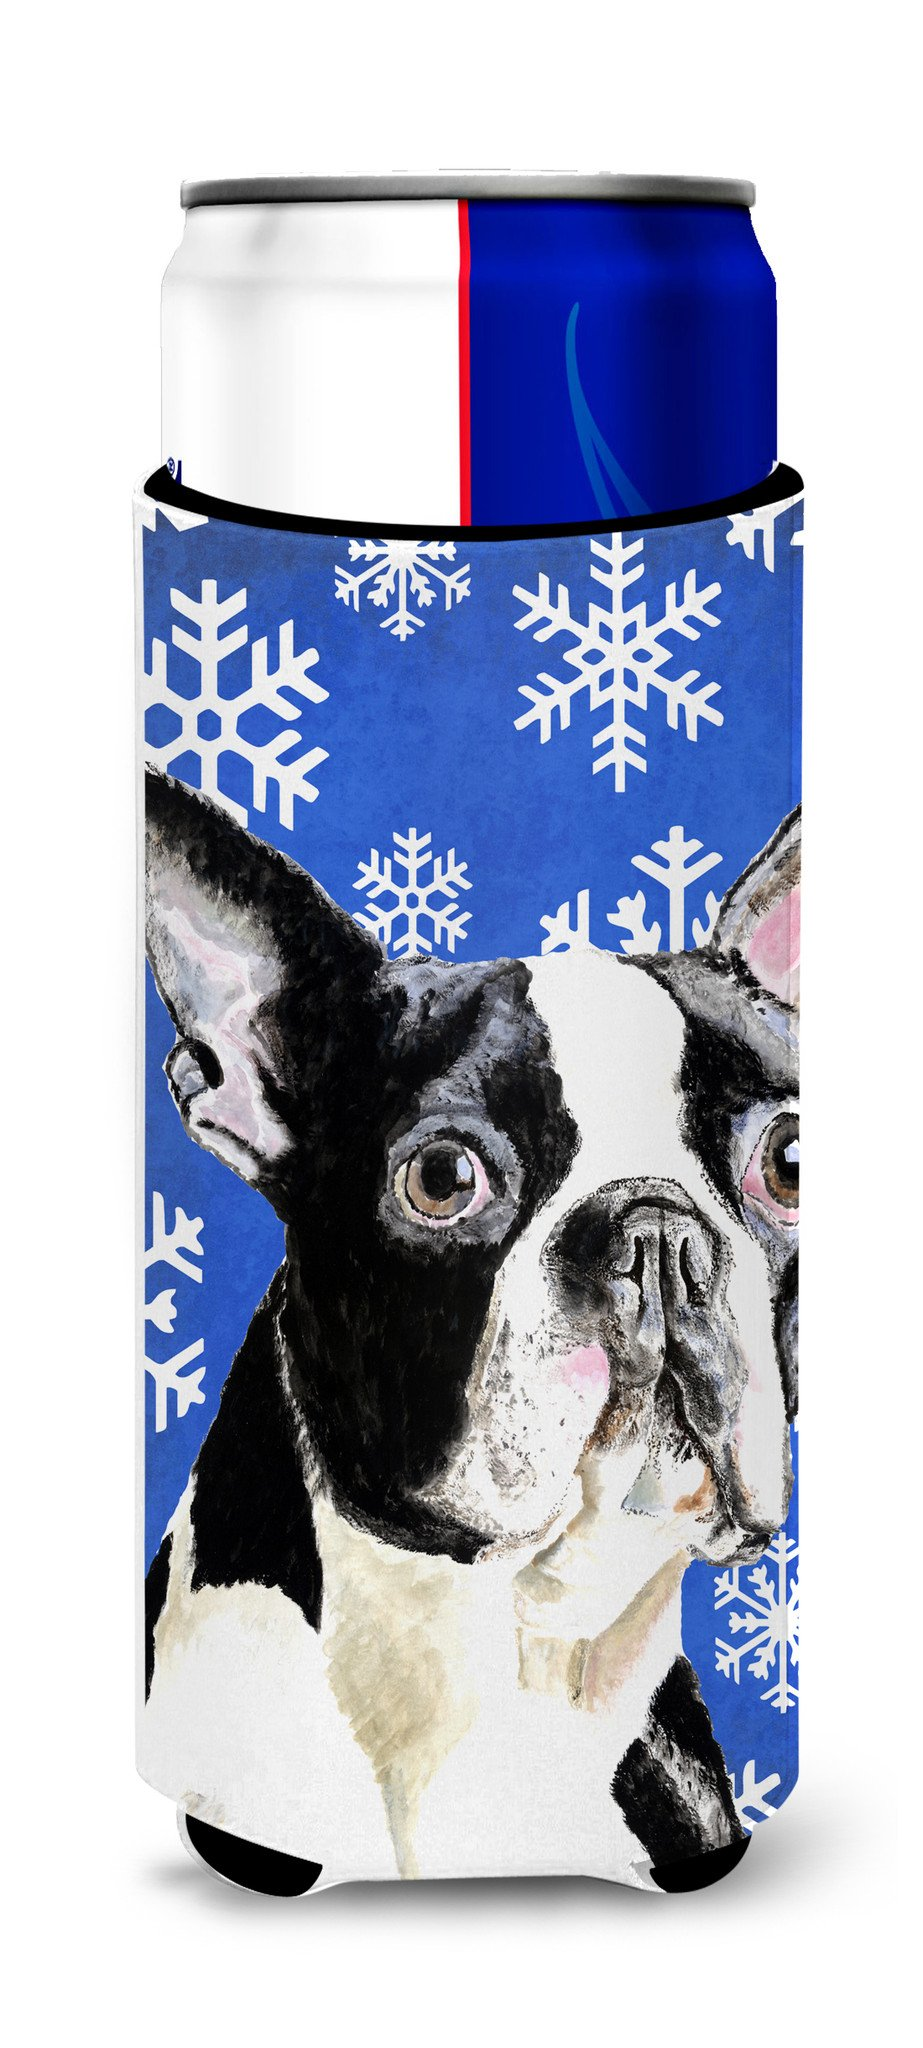 Boston Terrier Winter Snowflakes Holiday Ultra Beverage Insulators for slim cans SC9360MUK by Caroline's Treasures